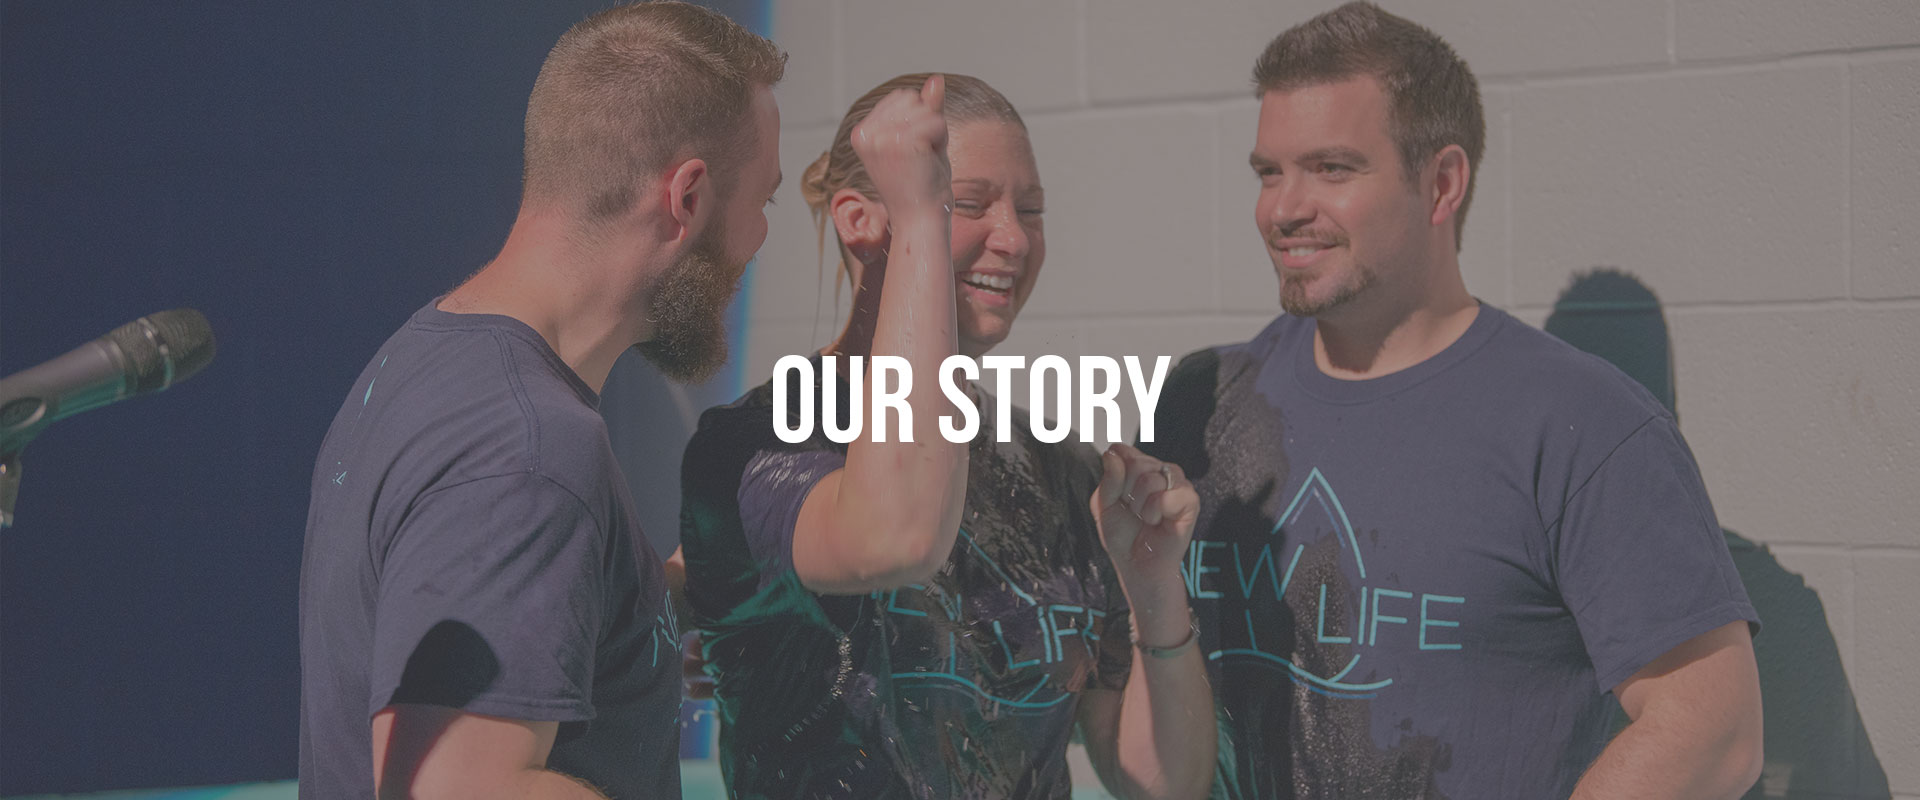 our-story-header-2